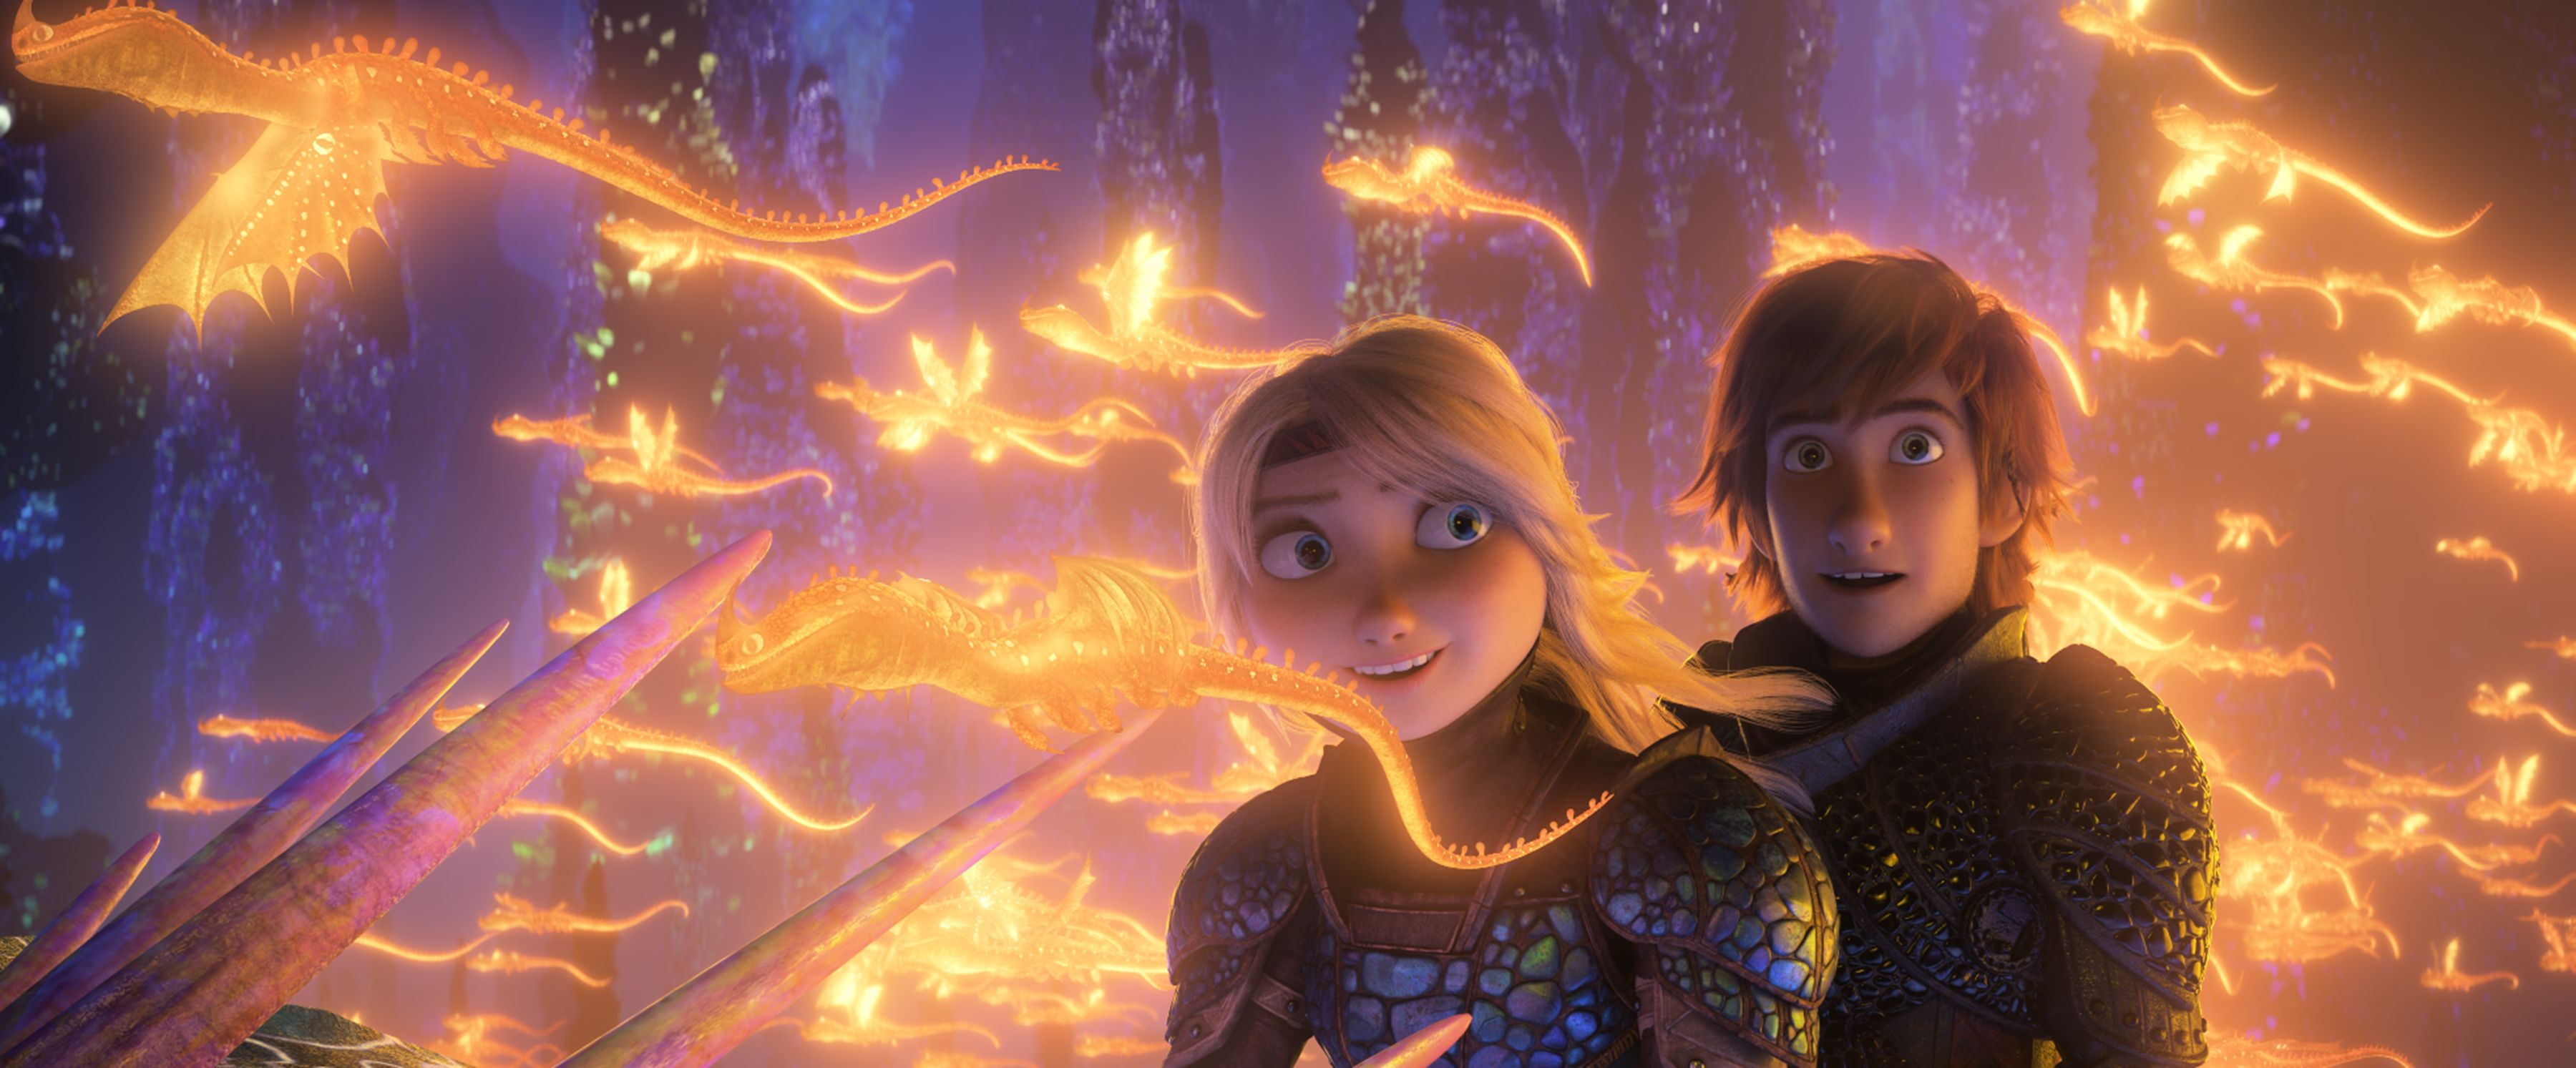 Escena de How to train your dragon